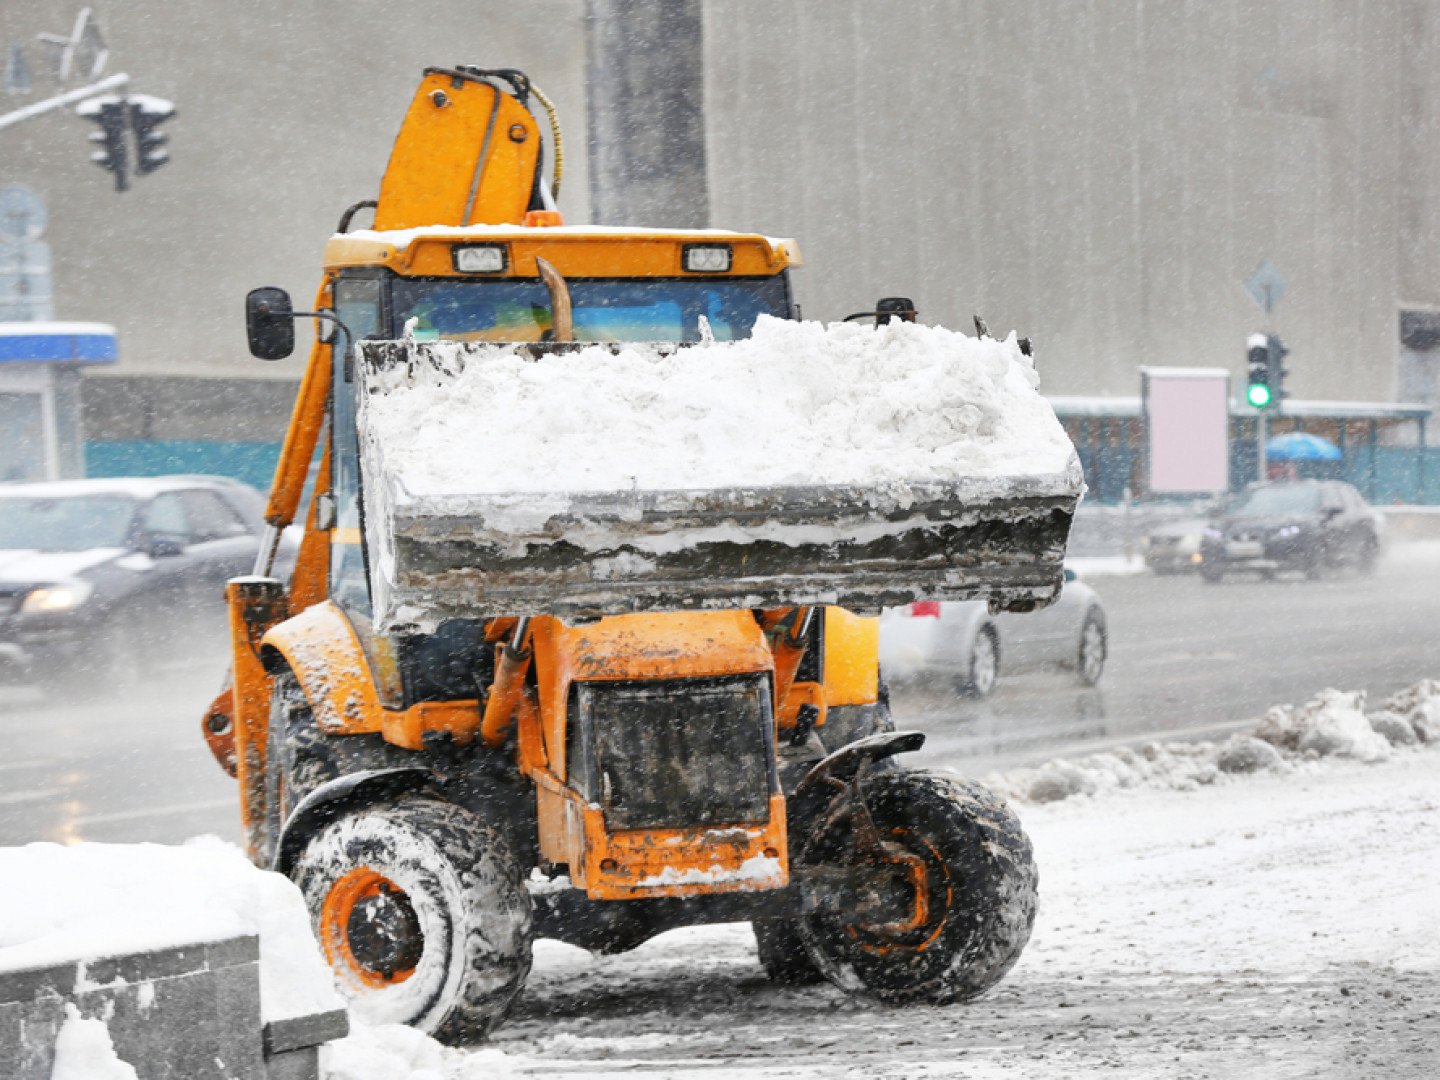 We'll remove snow from your property safely and efficiently